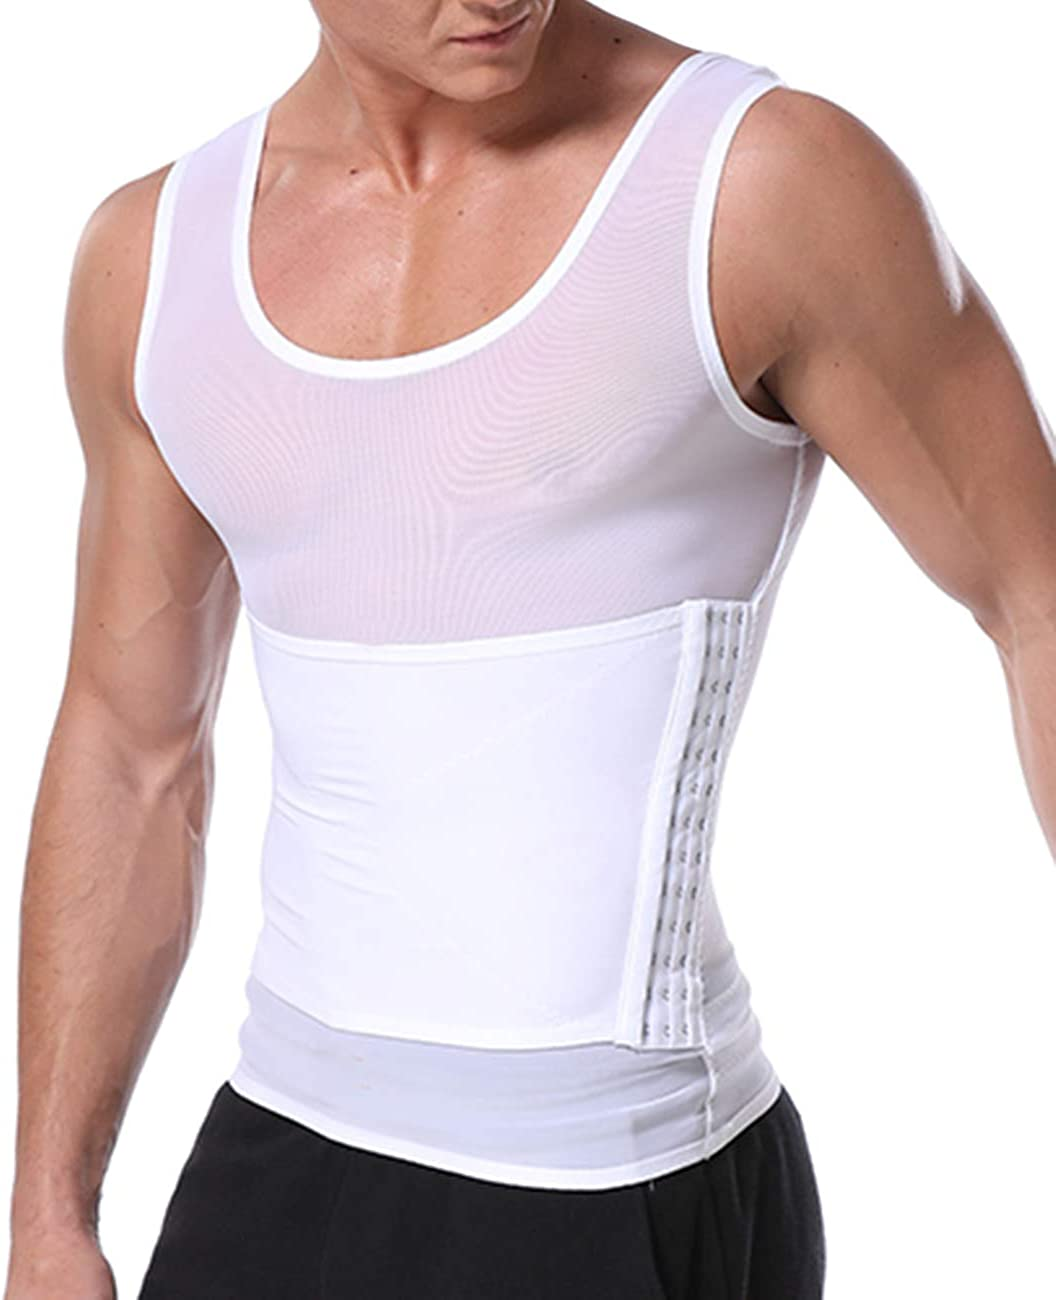 RIBIKA Slimming Popular shop is the Gorgeous lowest price challenge Body Shaper Vest Men Worko Compression for Shirt